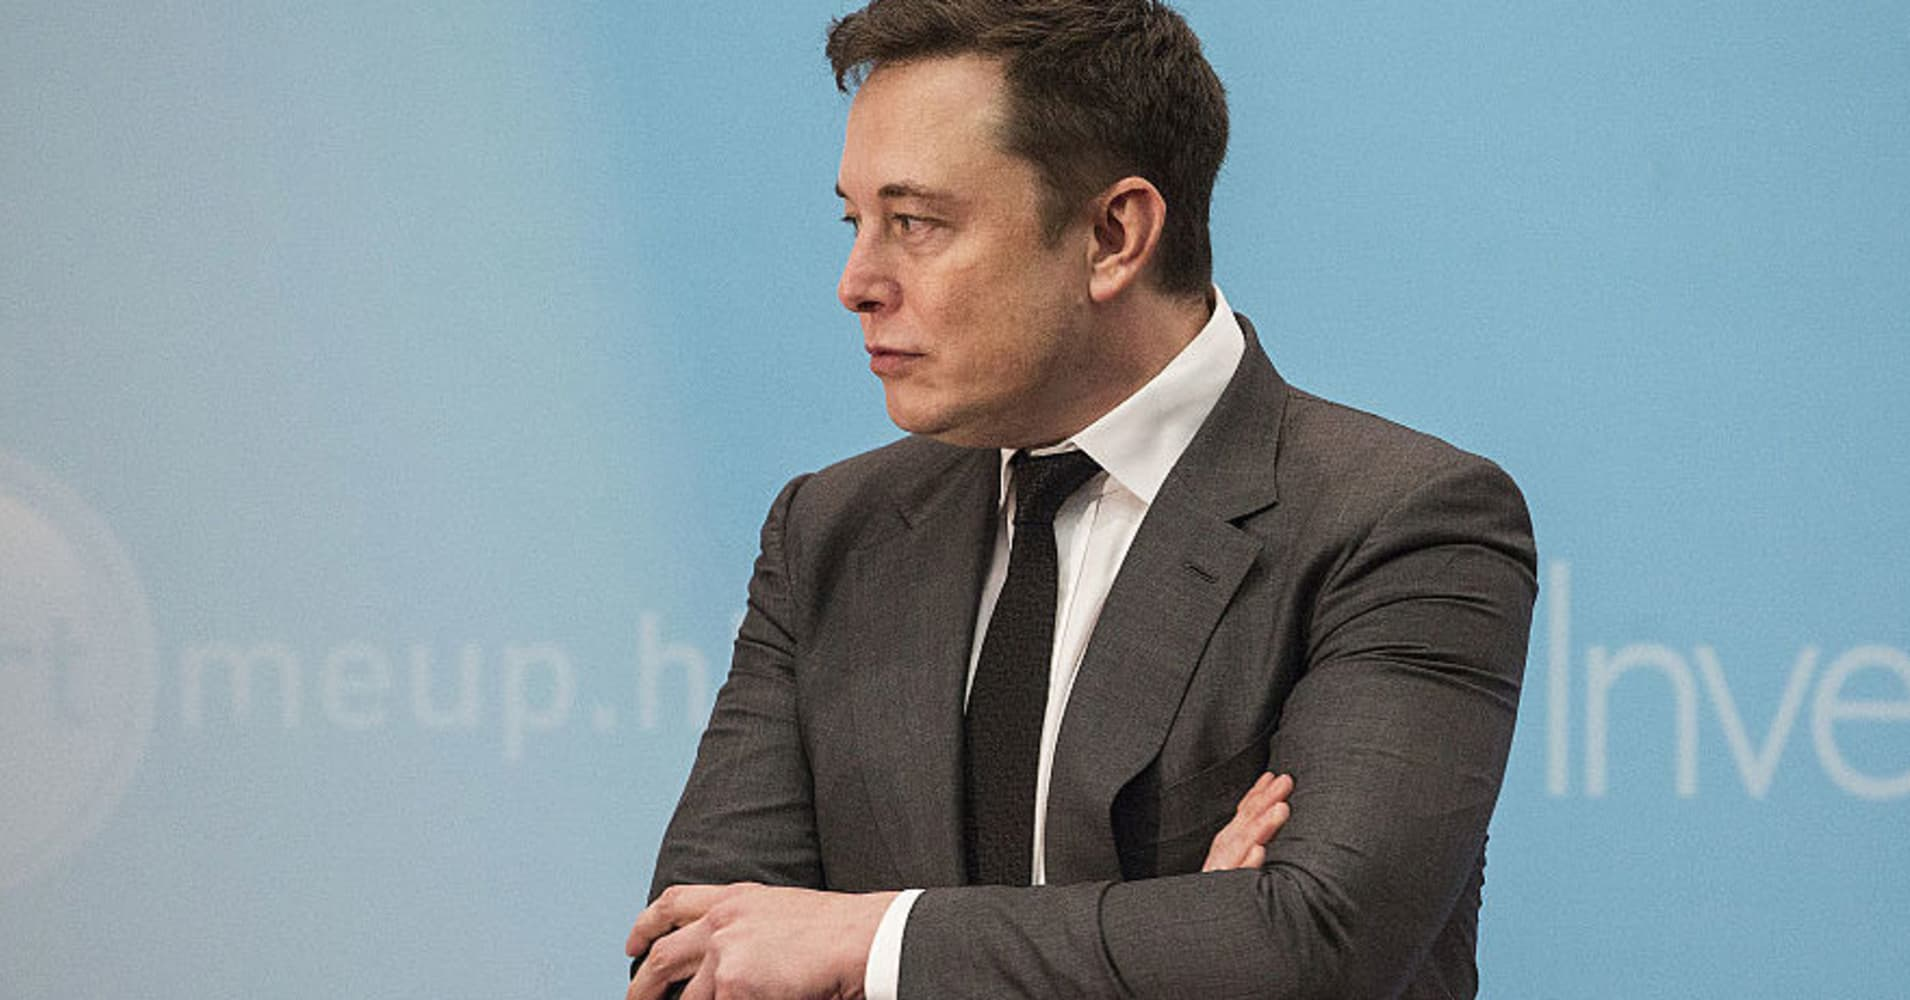 Elon Musk, CEO of SpaceX and Tesla